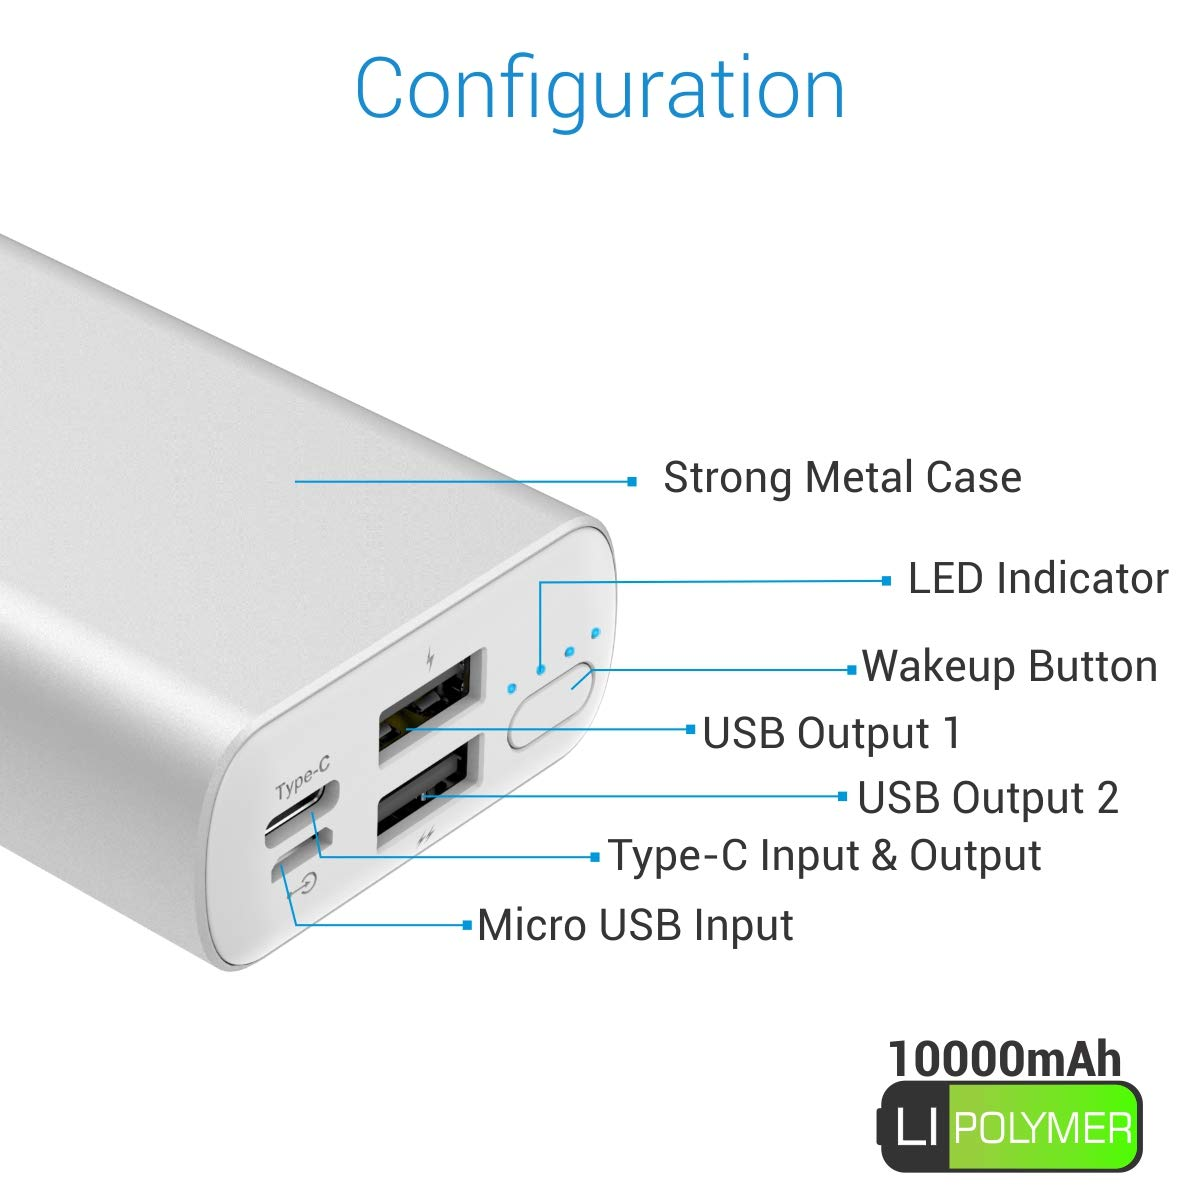 Portronics Power PERK 10K 10,000 mAh Power Bank with LED Indicator, 2.1A Dual Inputs (Type C + Micro USB) and 2.1A Dual USB Outputs + 2.1A Type C Output for All Android and iOS Devices (Silver)